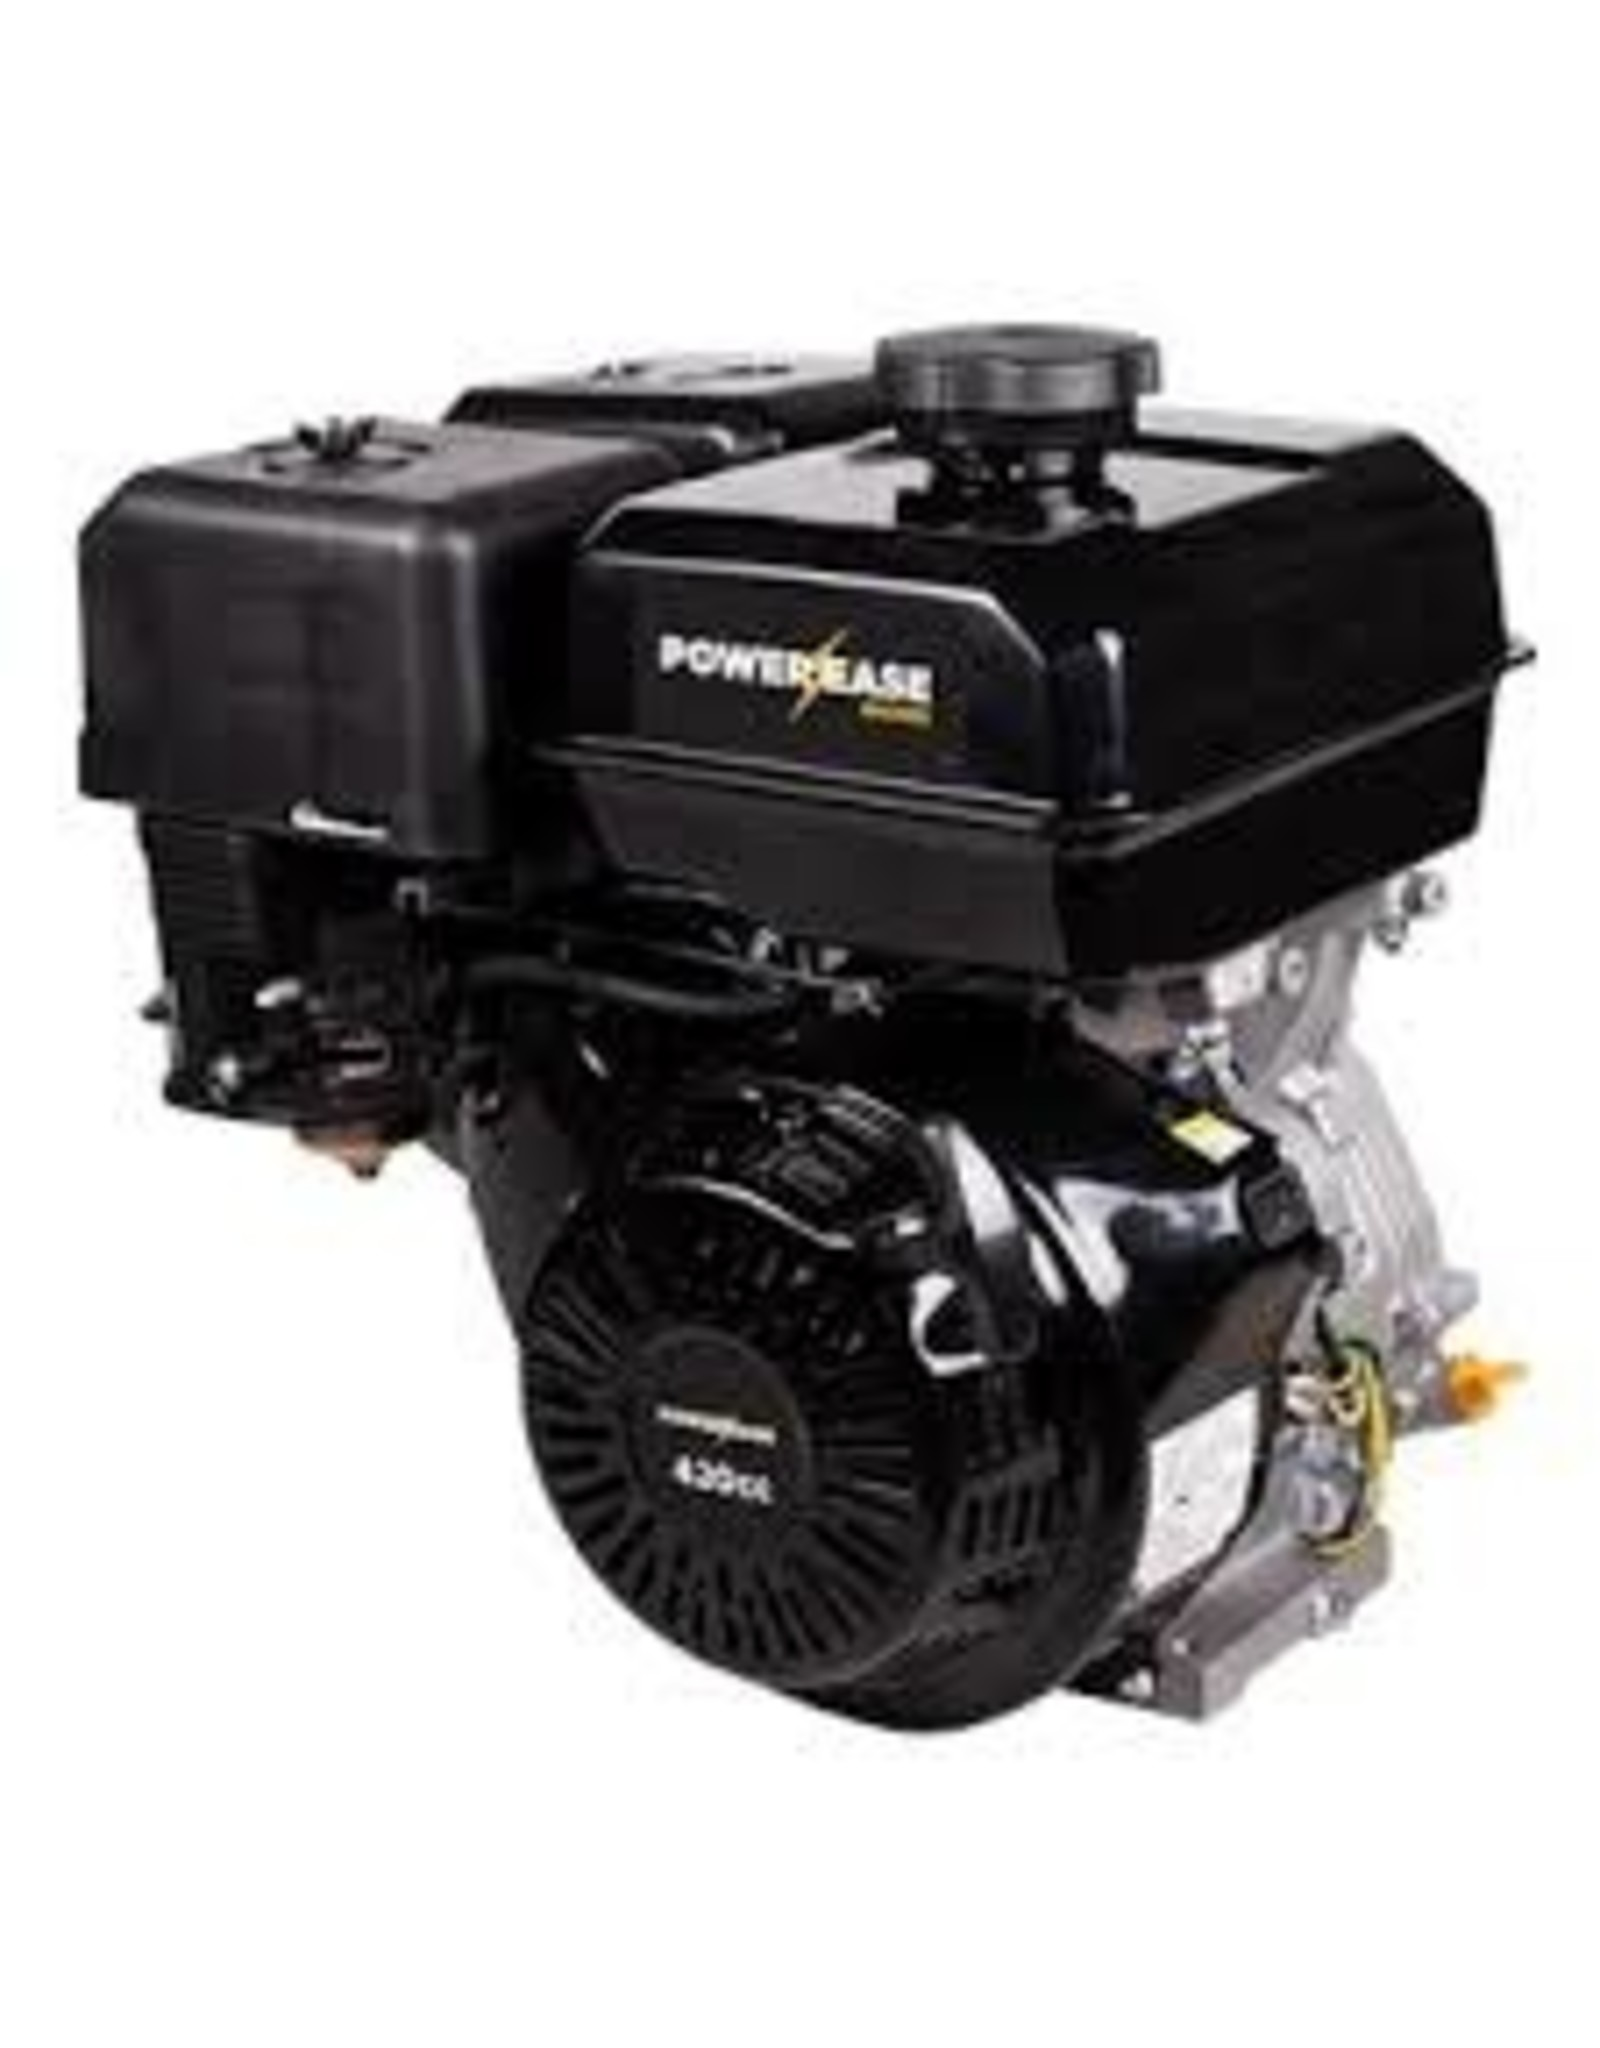 Power/Ease 85.570.150  Power/Ease Engine 420cc